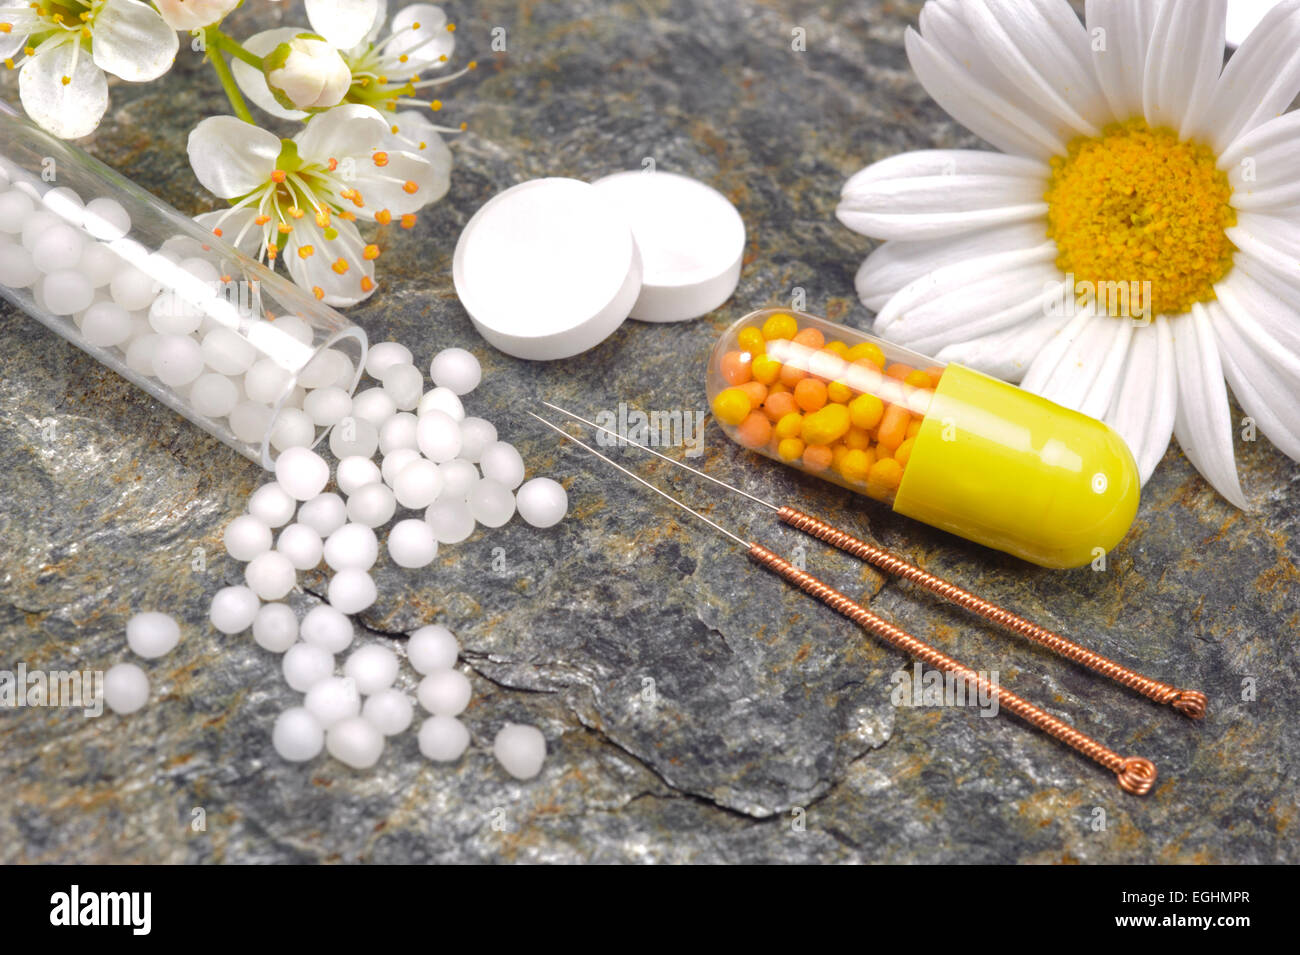 alternative medicine with herbal pills and acupuncture - Stock Image